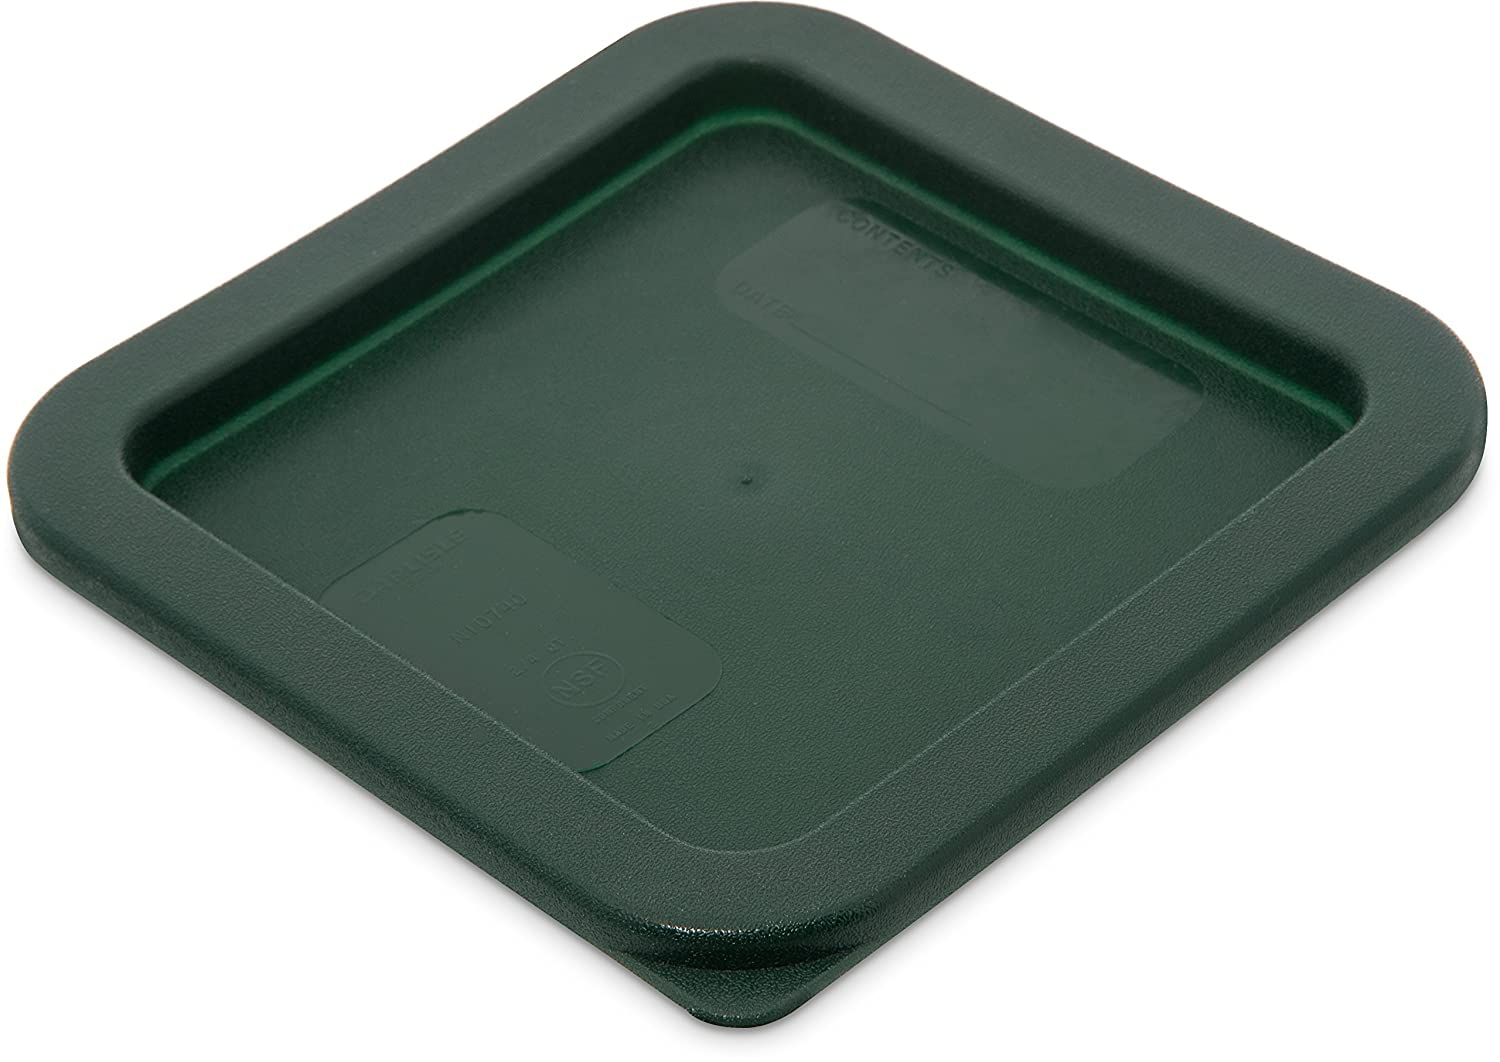 Carlisle 1074008 Storplus Square Container Lid, 2-4 Quart, Dark Green